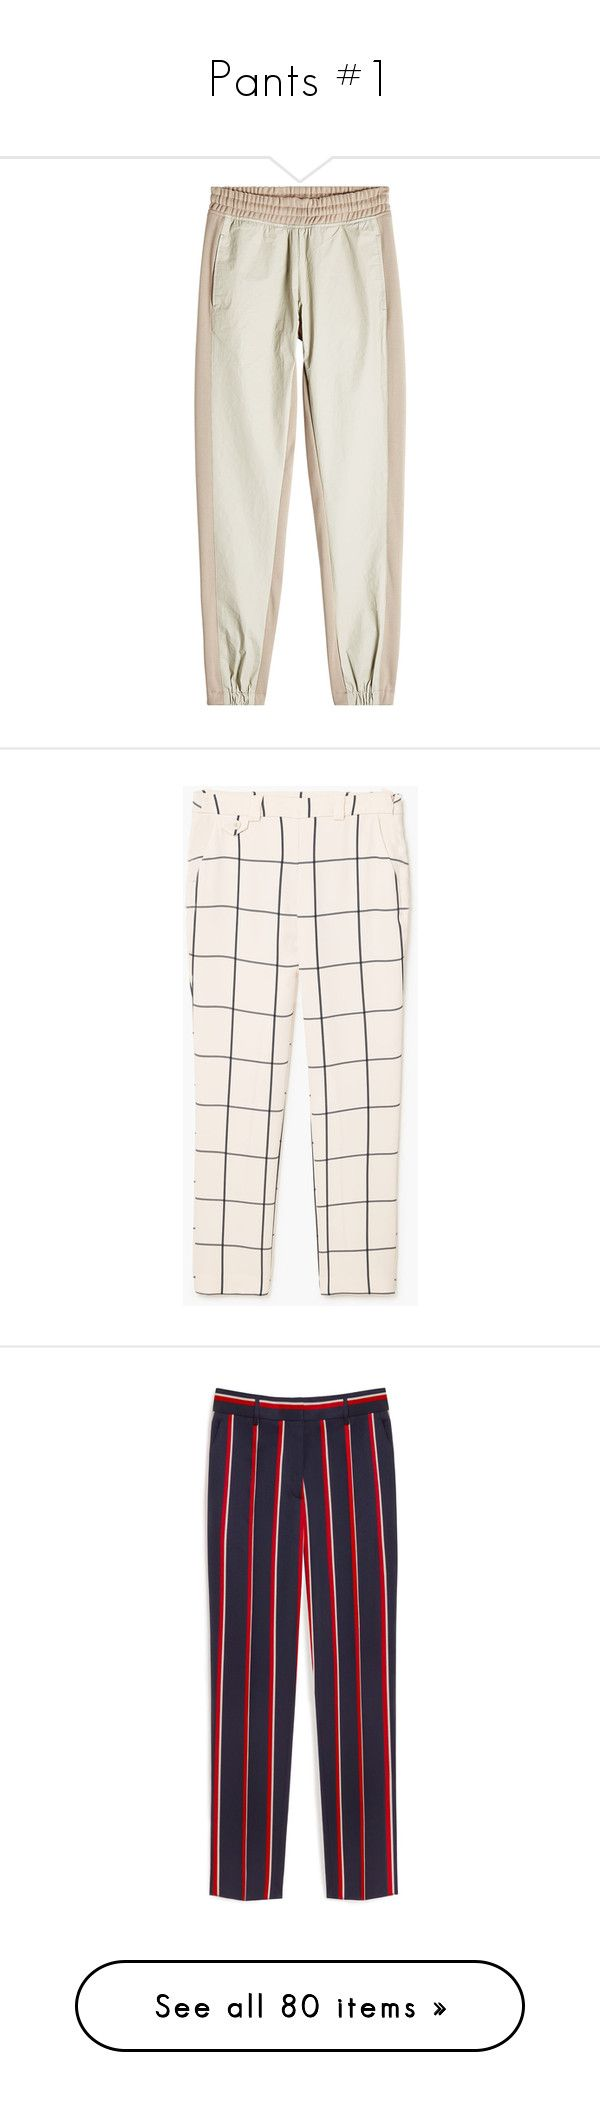 """""""Pants #1"""" by banana-lee ❤ liked on Polyvore featuring activewear, activewear pants, pants, beige, track pants, adidas originals, pantalones, pink trousers, mango trousers and checked pants"""